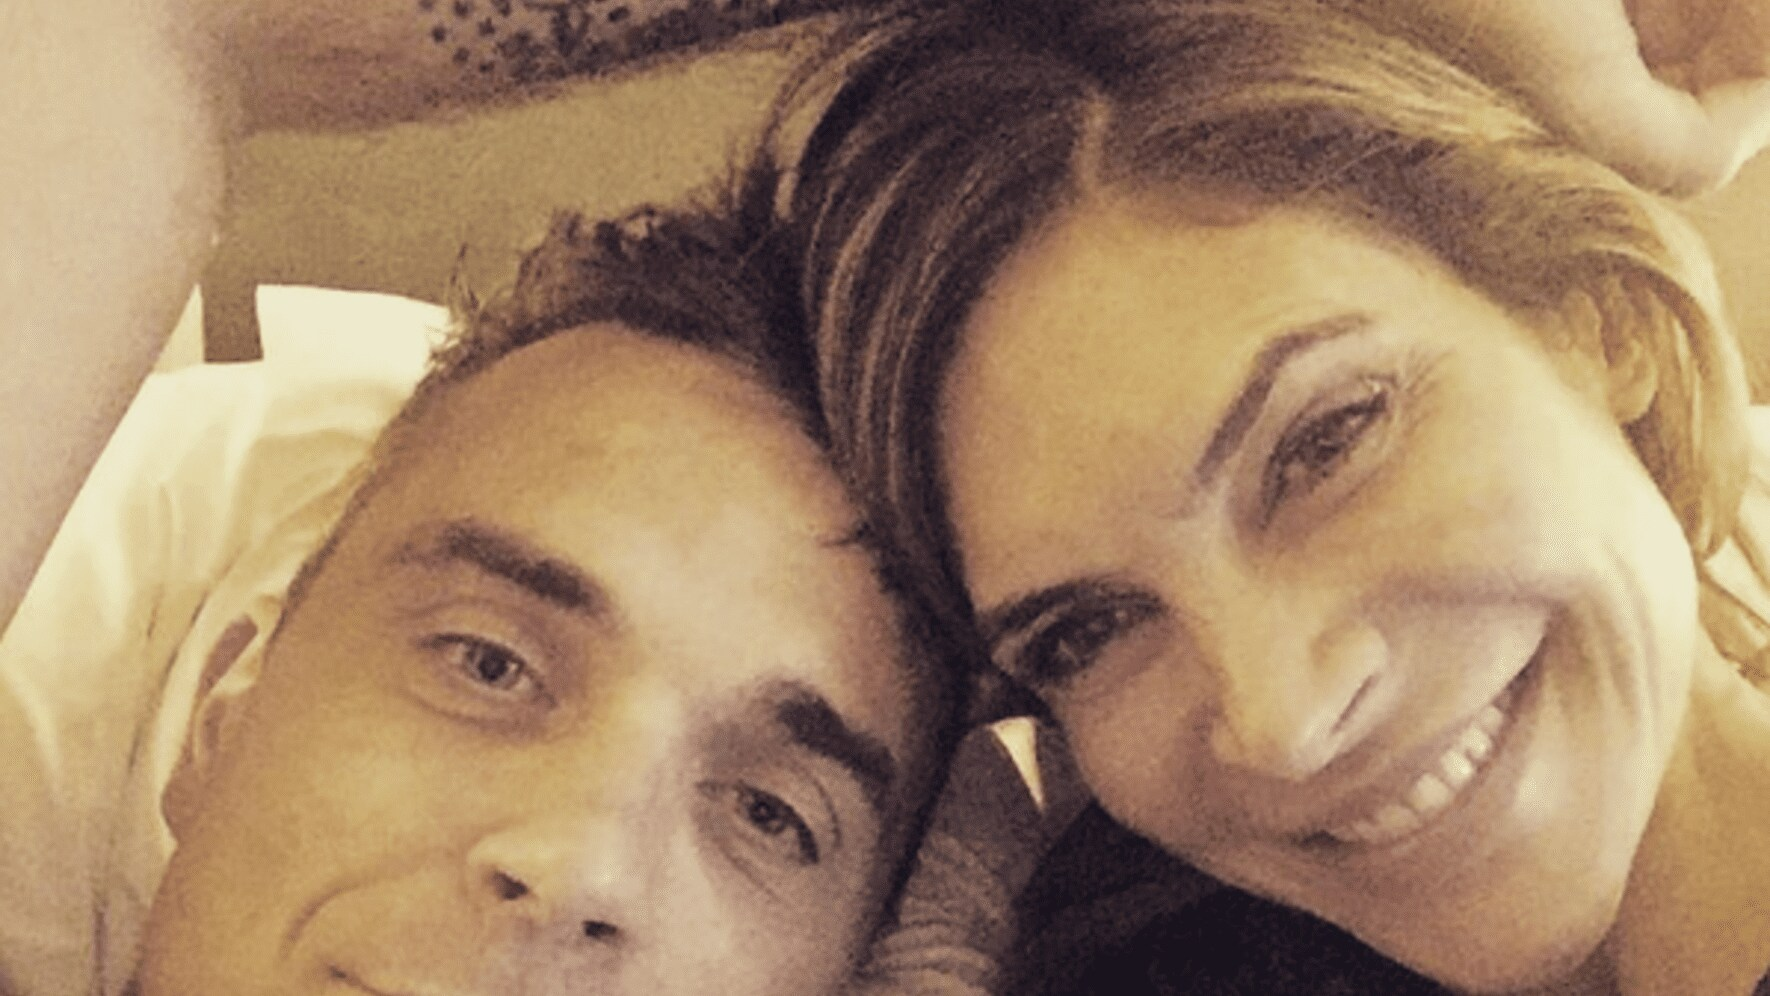 Robbie Williams Angel Frau Kind Instagram Fotos